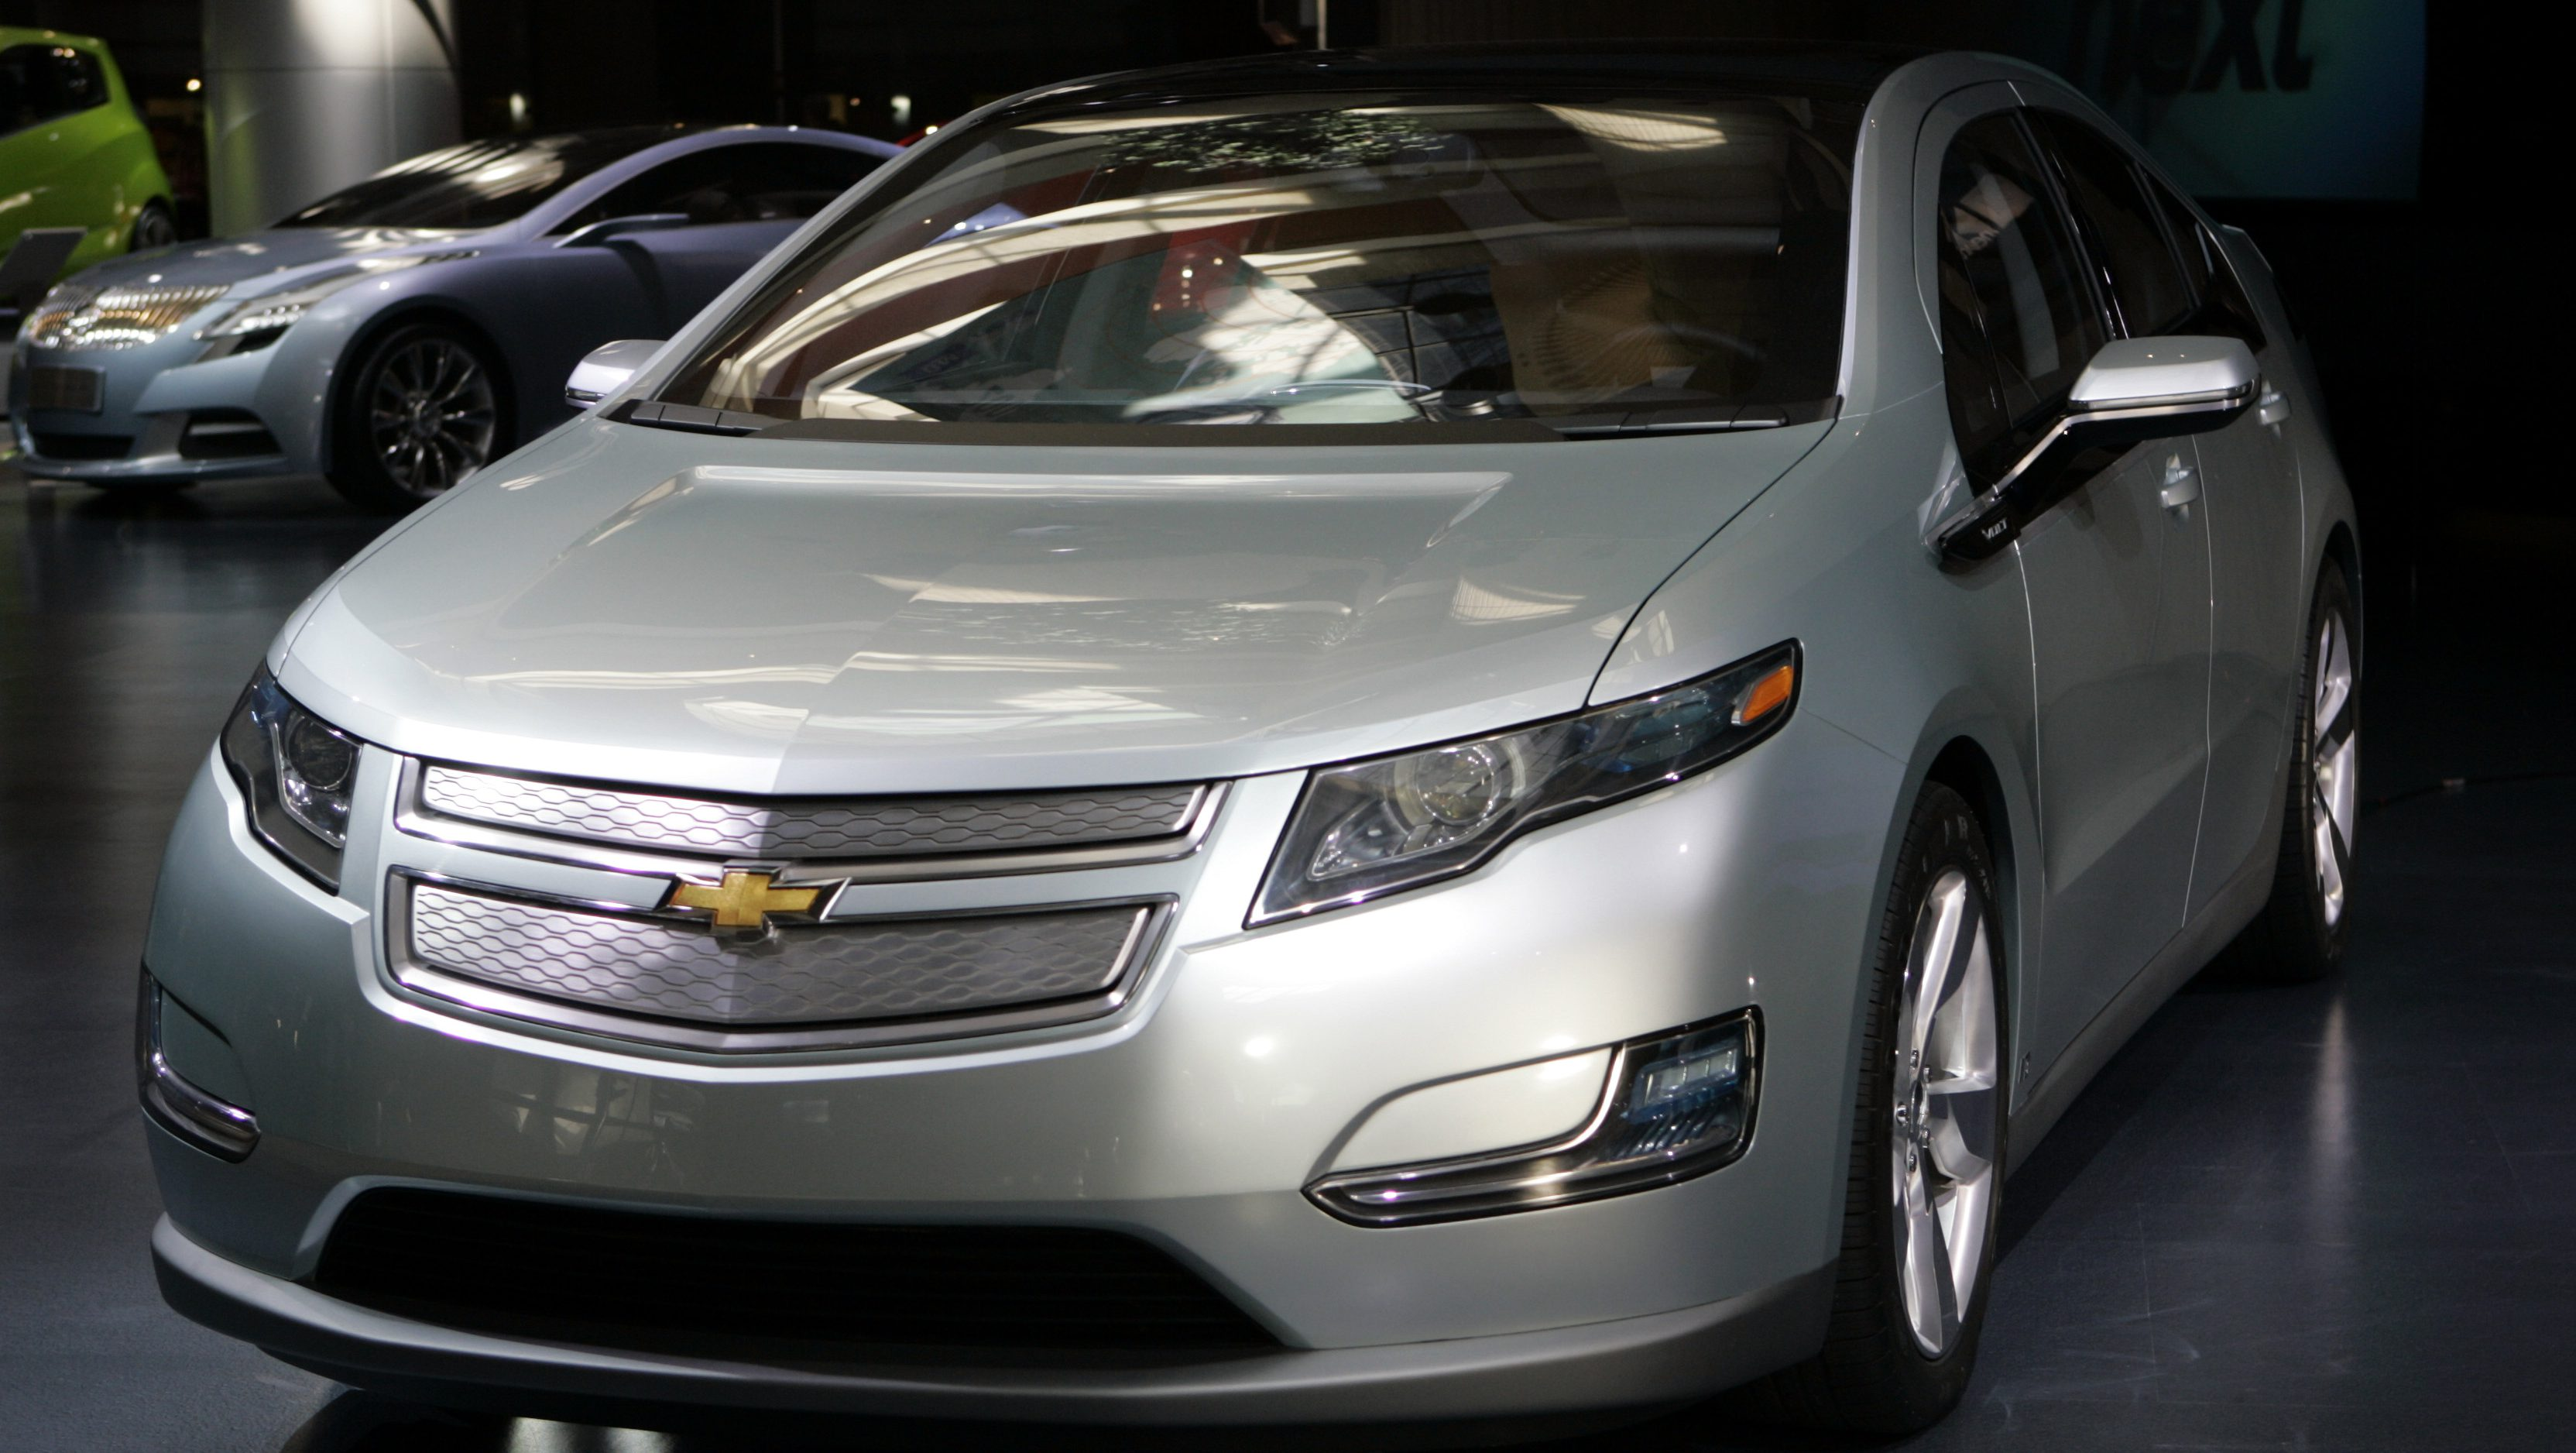 The Chevrolet Volt is displayed at General Motors' World Headquarters in Detroit